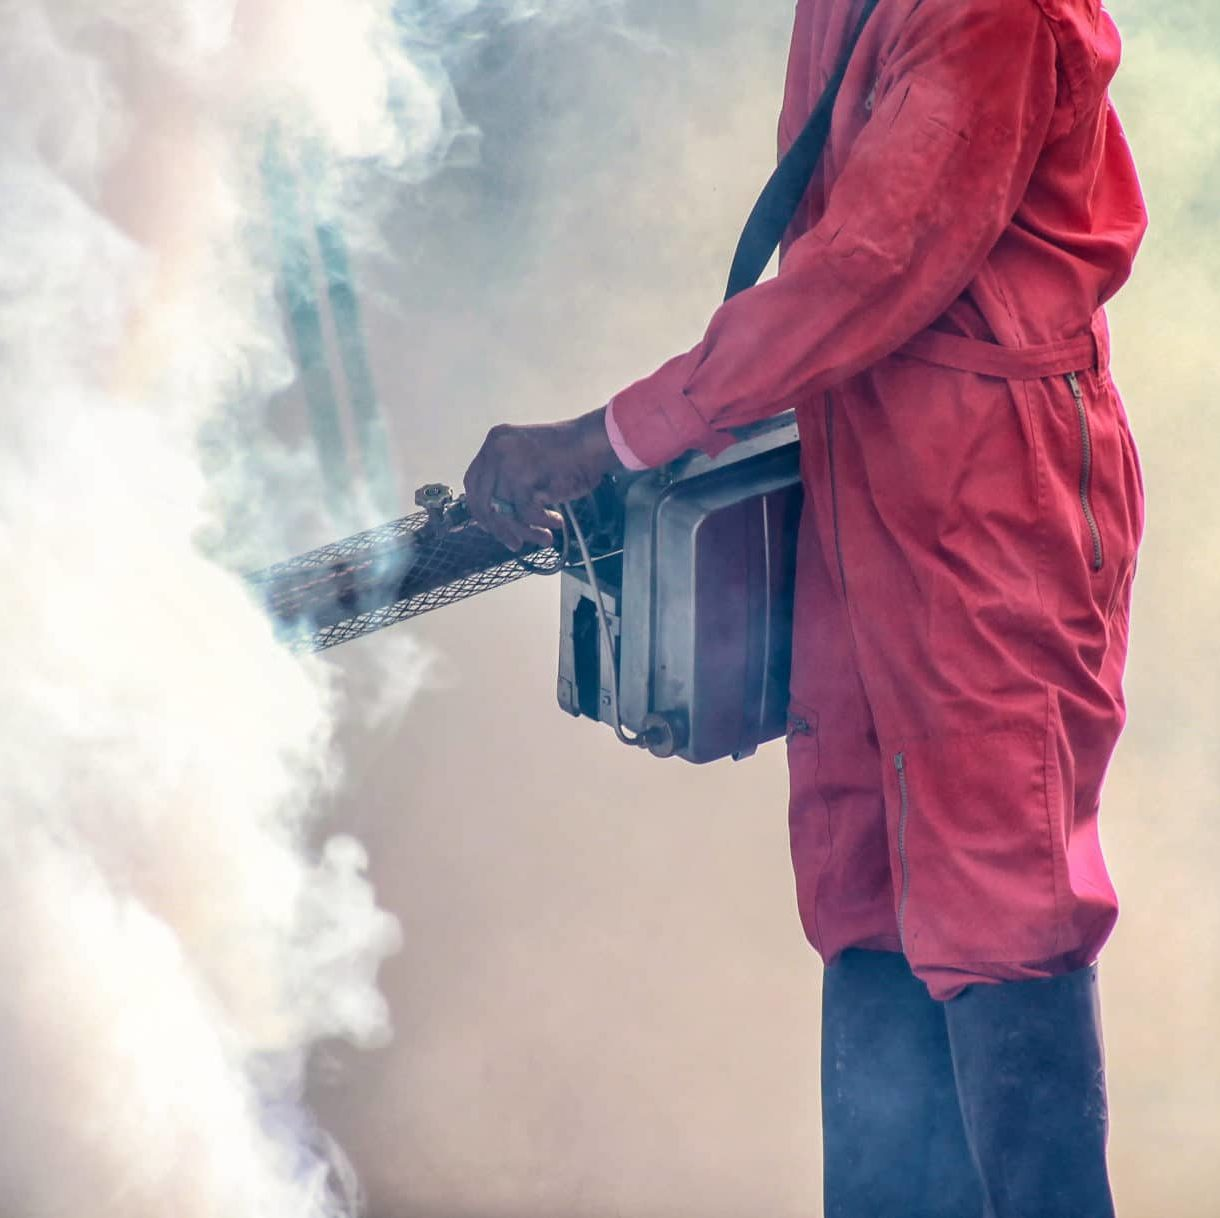 Man in red protective gear, fumigating.